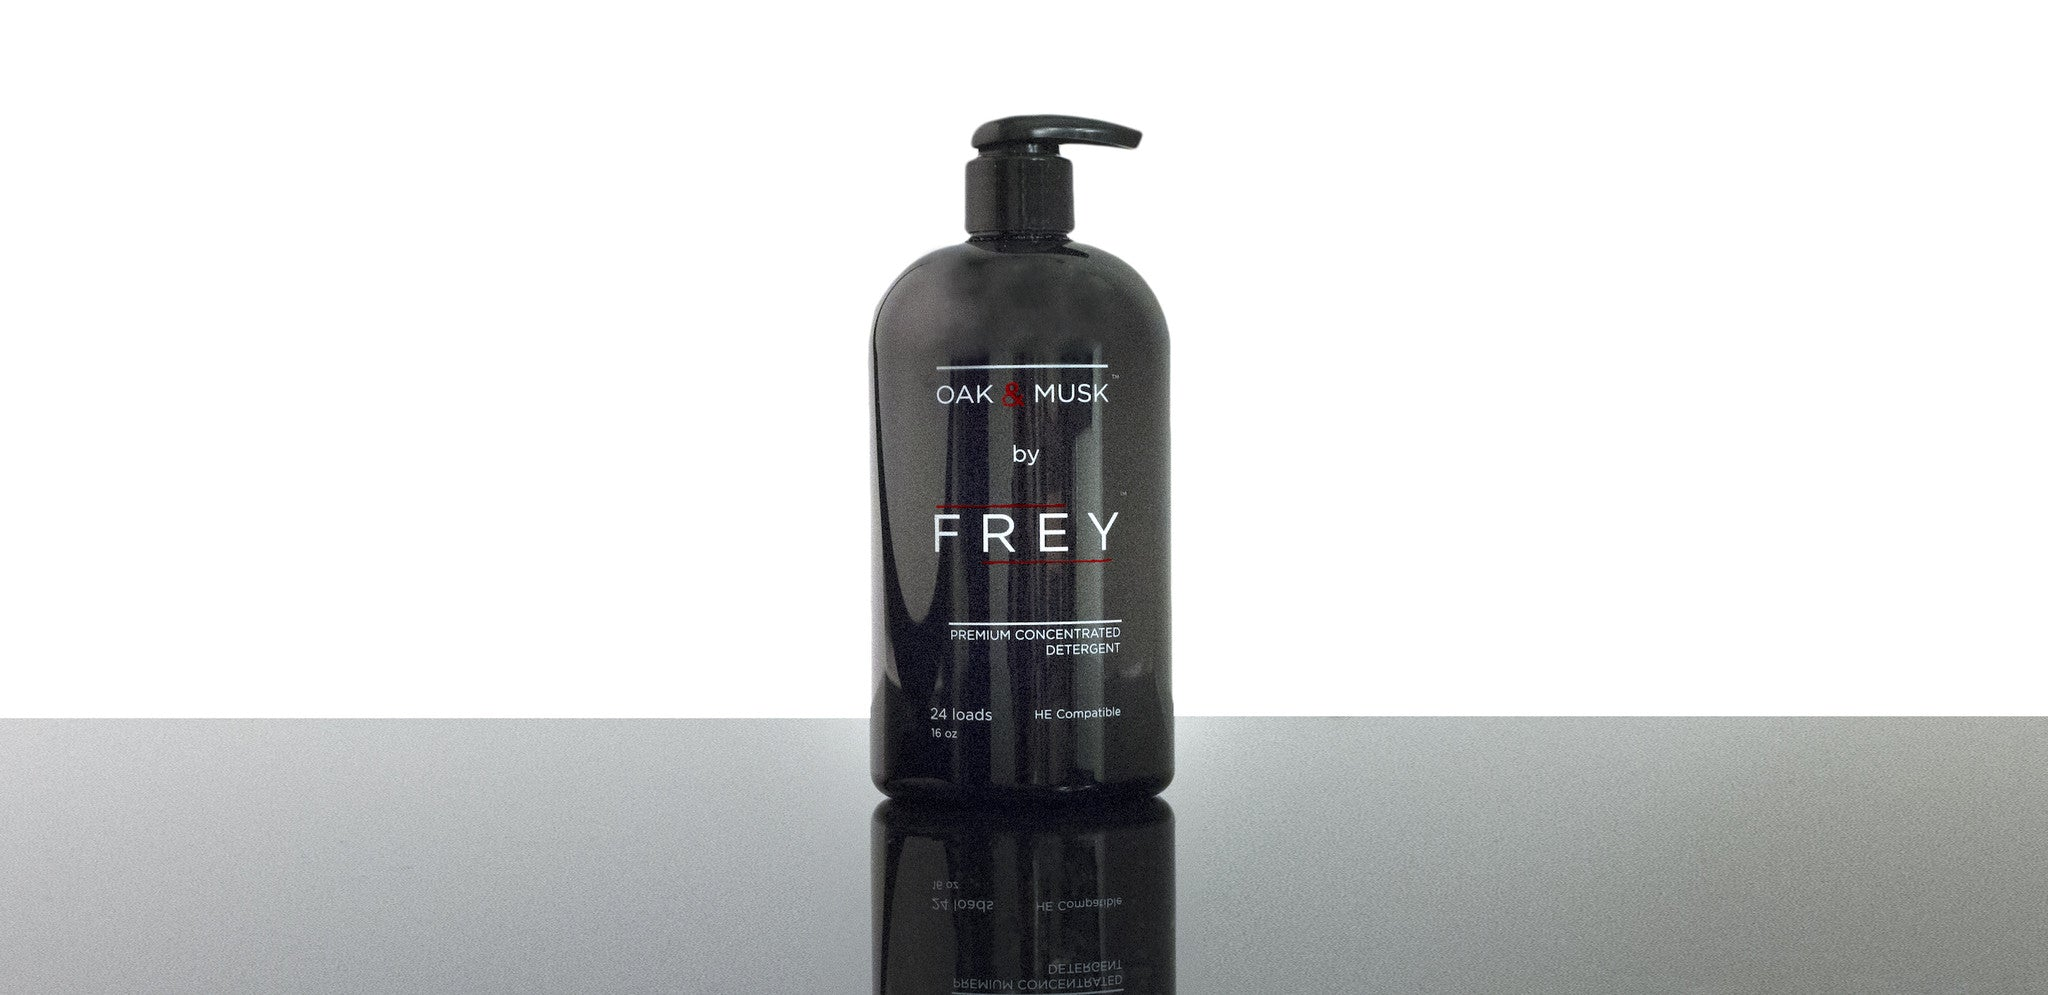 FREY Premium Concentrated Laundry Detergent - FREY: Detergent for Men  - 2